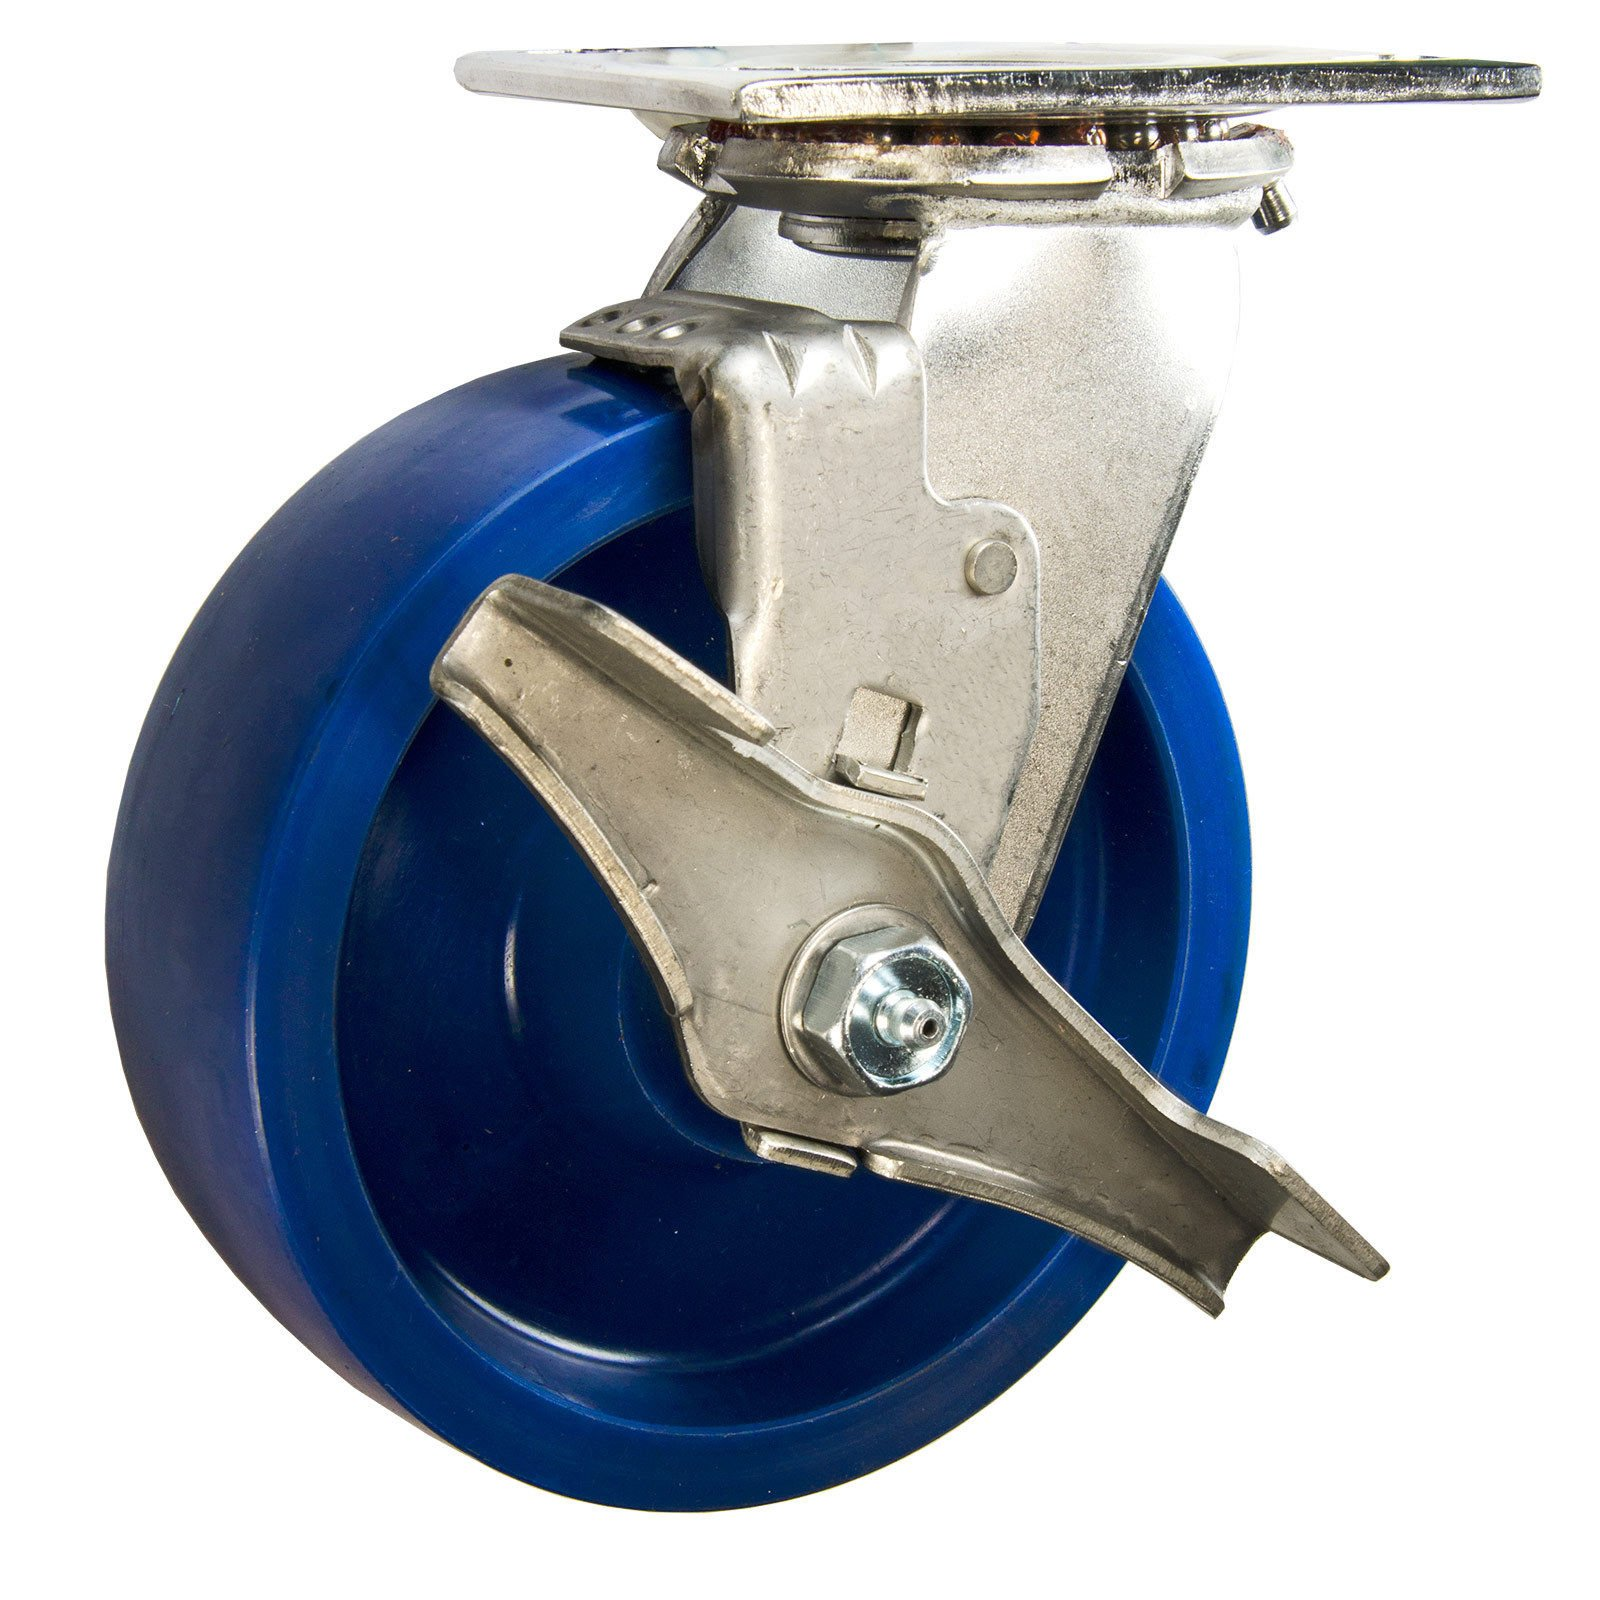 6'' Stainless Steel Swivel Caster Solid Poly Wheel with Brake - 1200 Lbs Cap Service Caster Brand